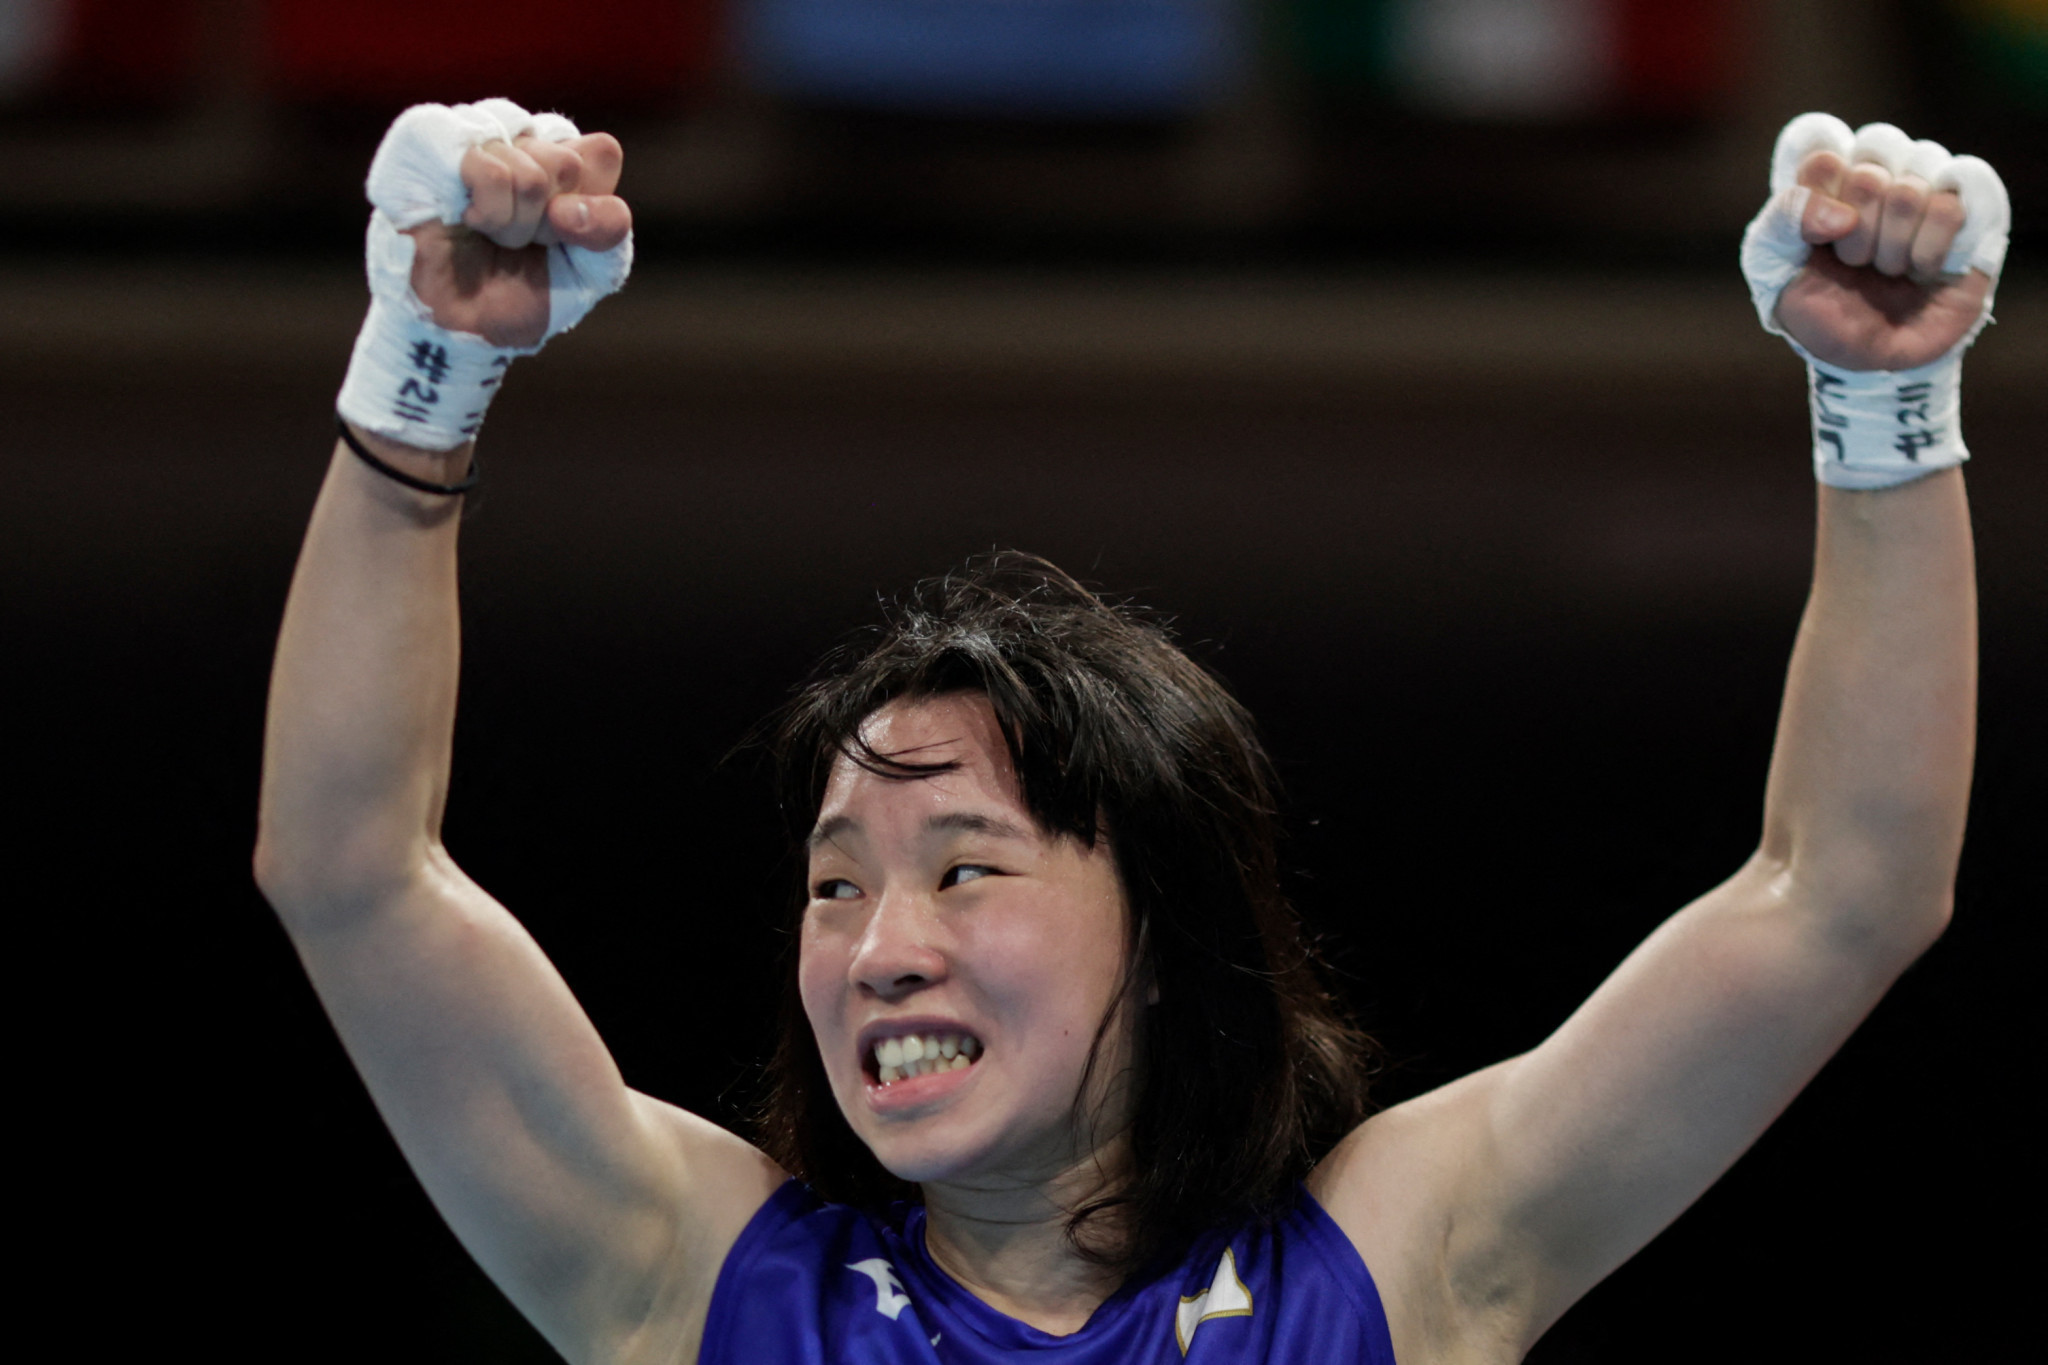 Japan's Irie claims first Olympic gold under IOC Boxing Task Force ruling